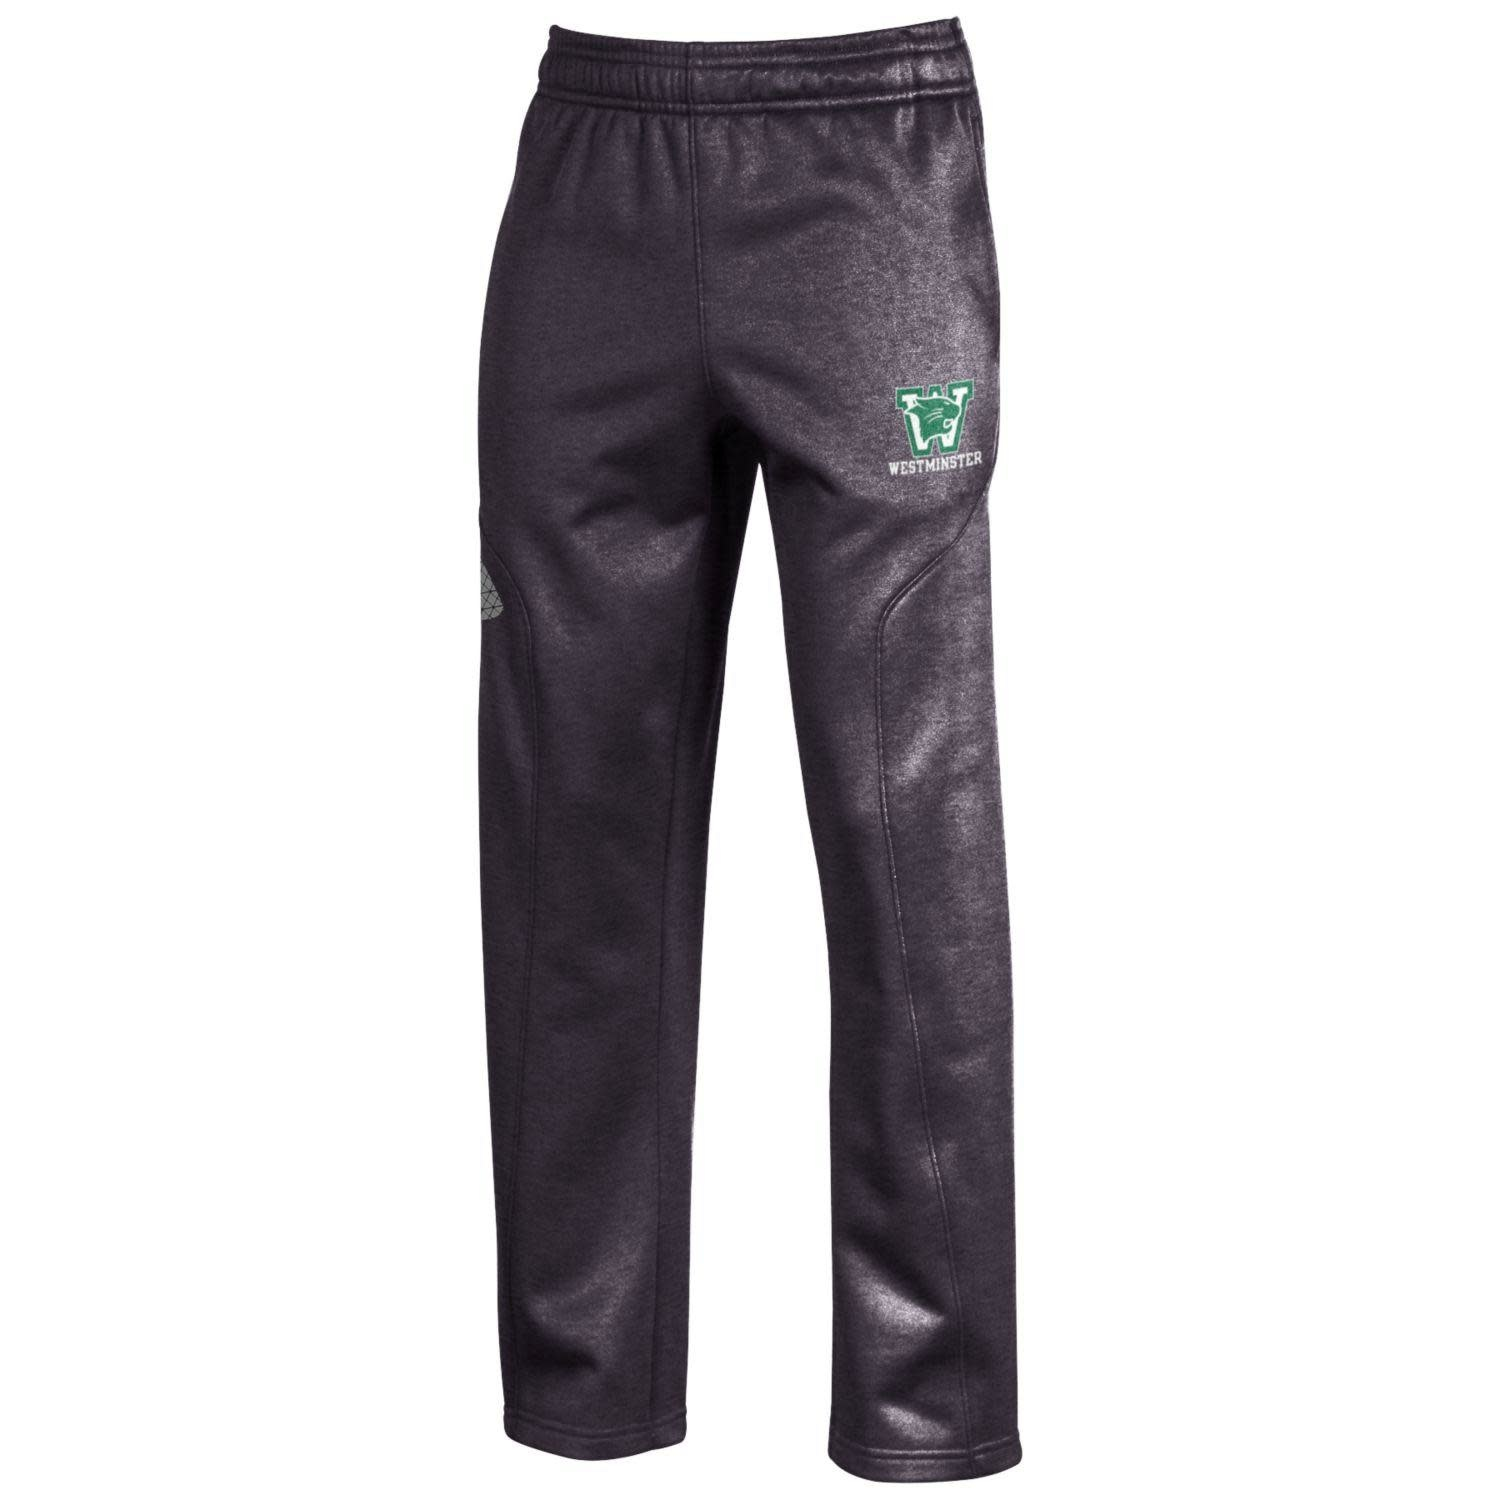 Under Armour Sweatpants: UA Youth Small Armour Fleece - Carbon Heather - Westminster under logo